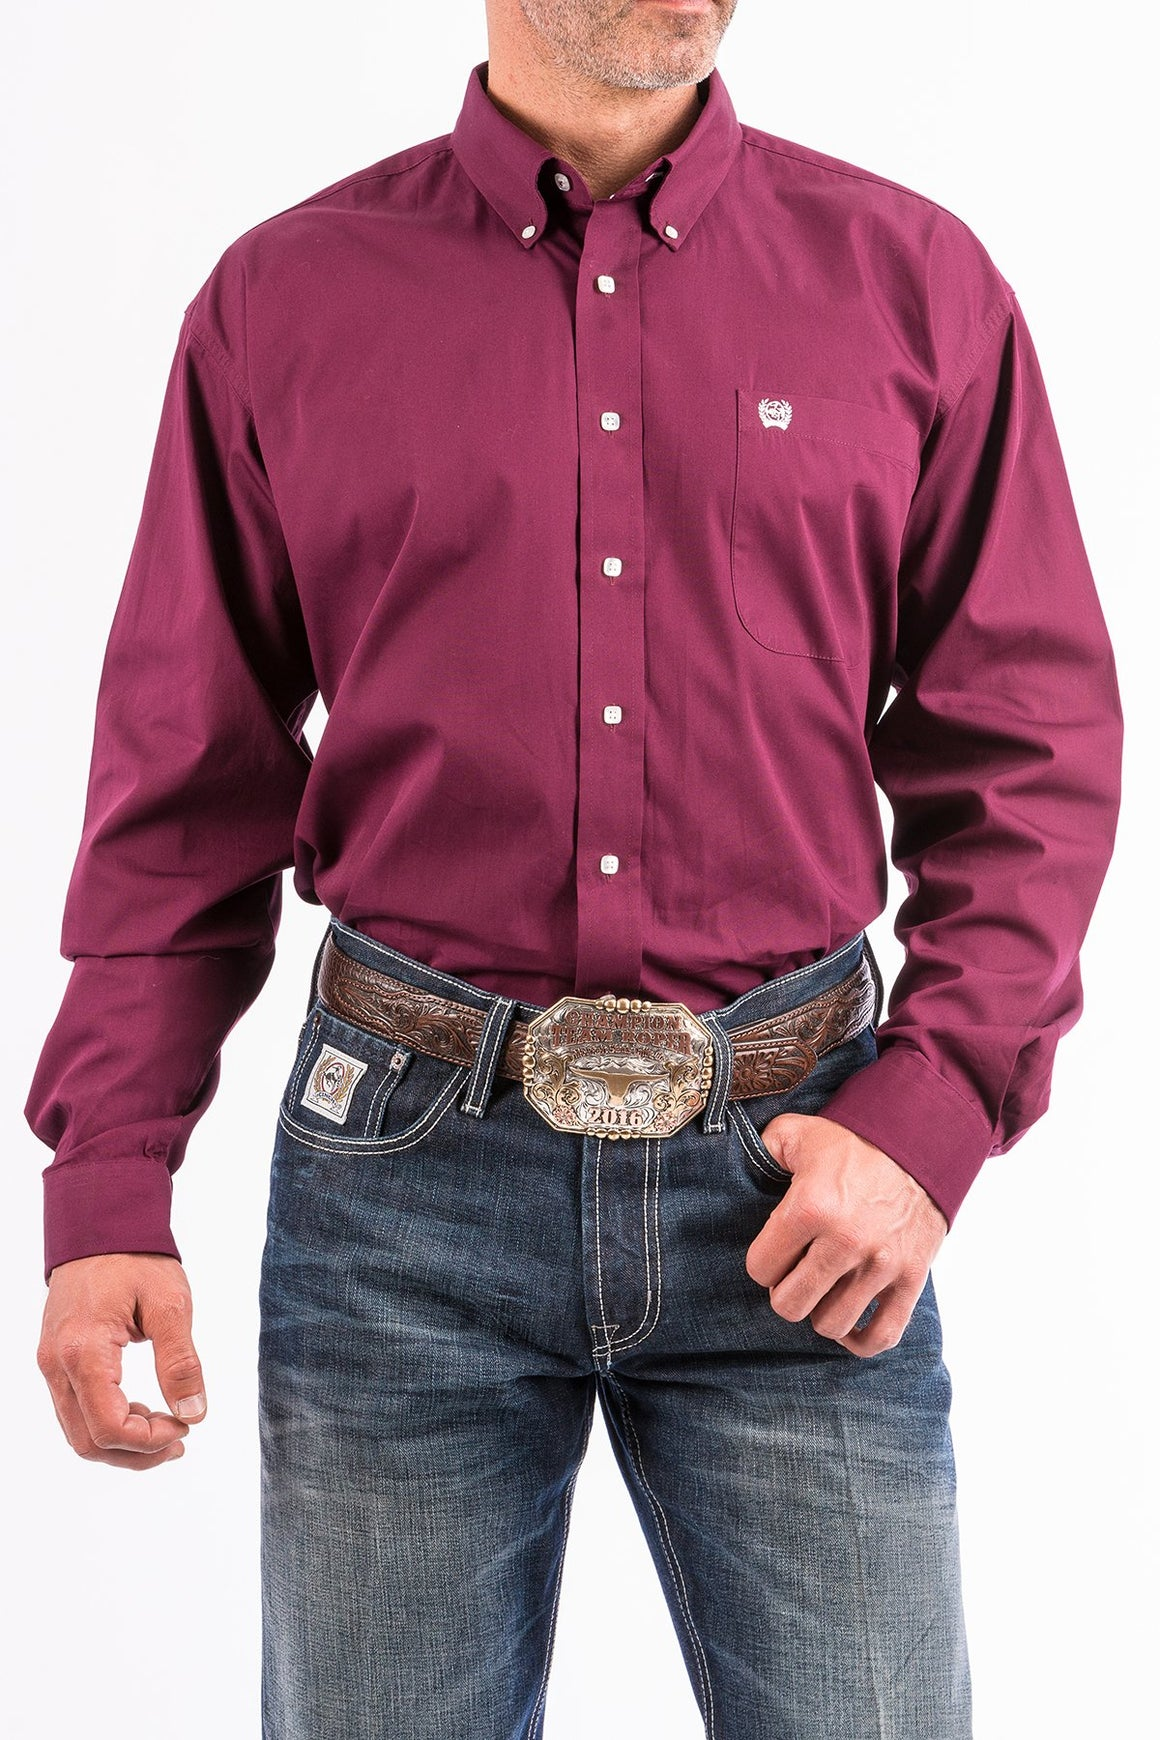 Cinch Solid Burgundy Shirt